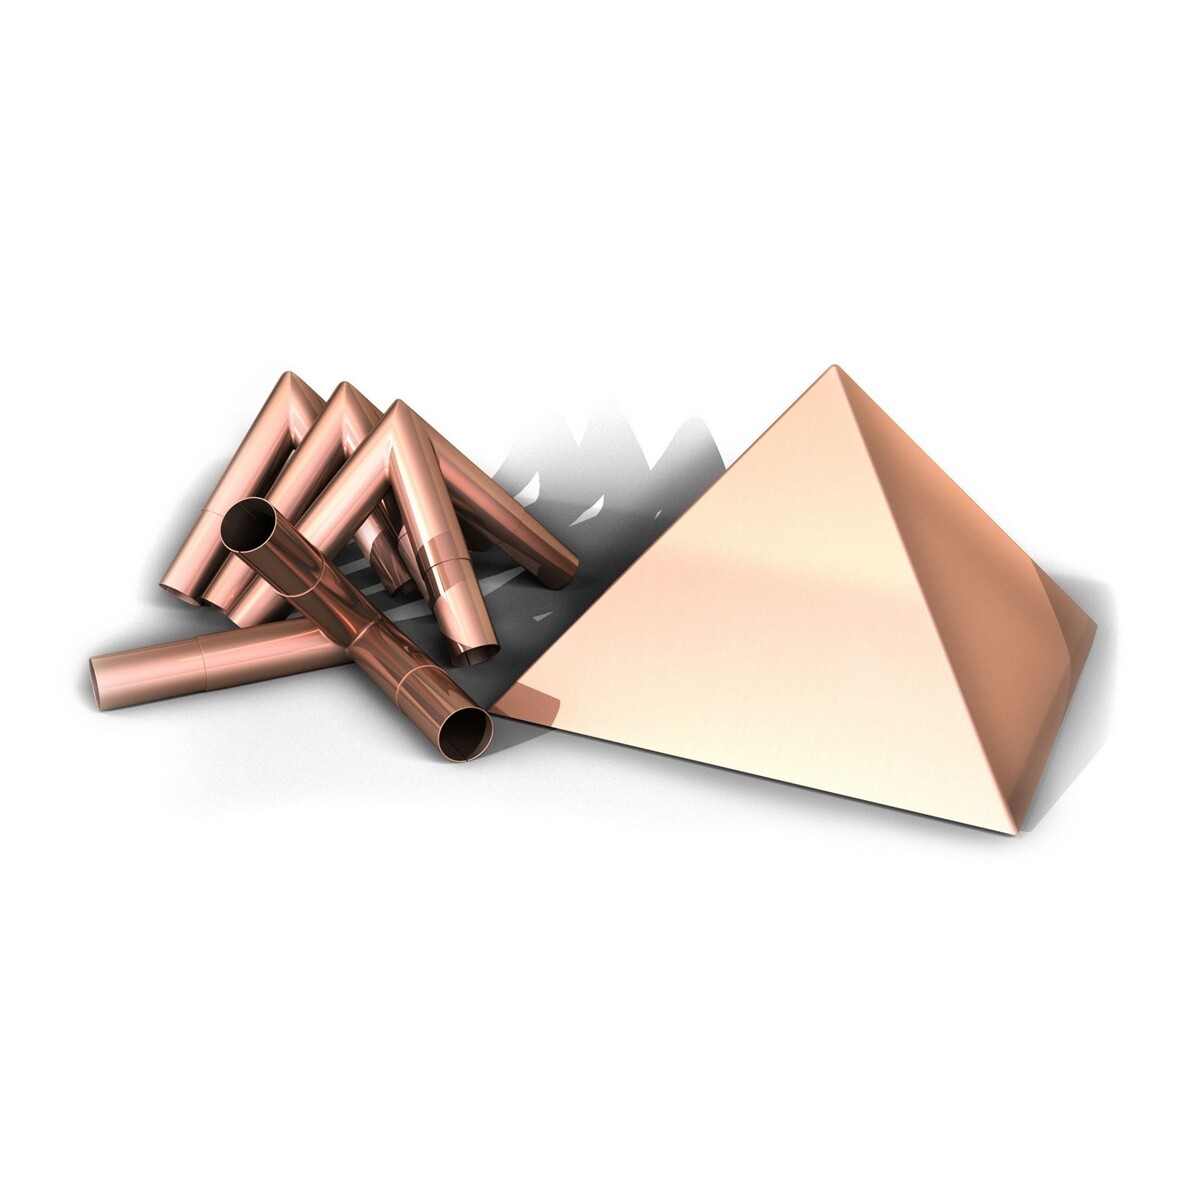 "Meditation Pyramid Polished Copper Connector Kit with 10"" Capstone - Fits 1 Inch Type M Copper Poles"